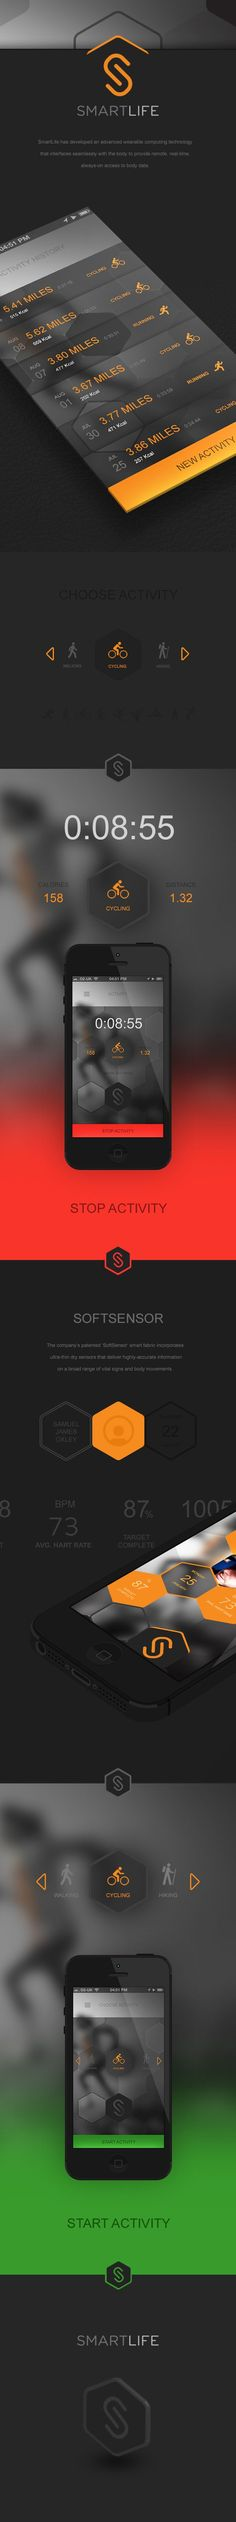 SmartLife Sports App by Samuel James Oxley, via Behance. If you like UX, design, or design thinking, check out theuxblog.com podcast https://itunes.apple.com/us/podcast/ux-blog-user-experience-design/id1127946001?mt=2